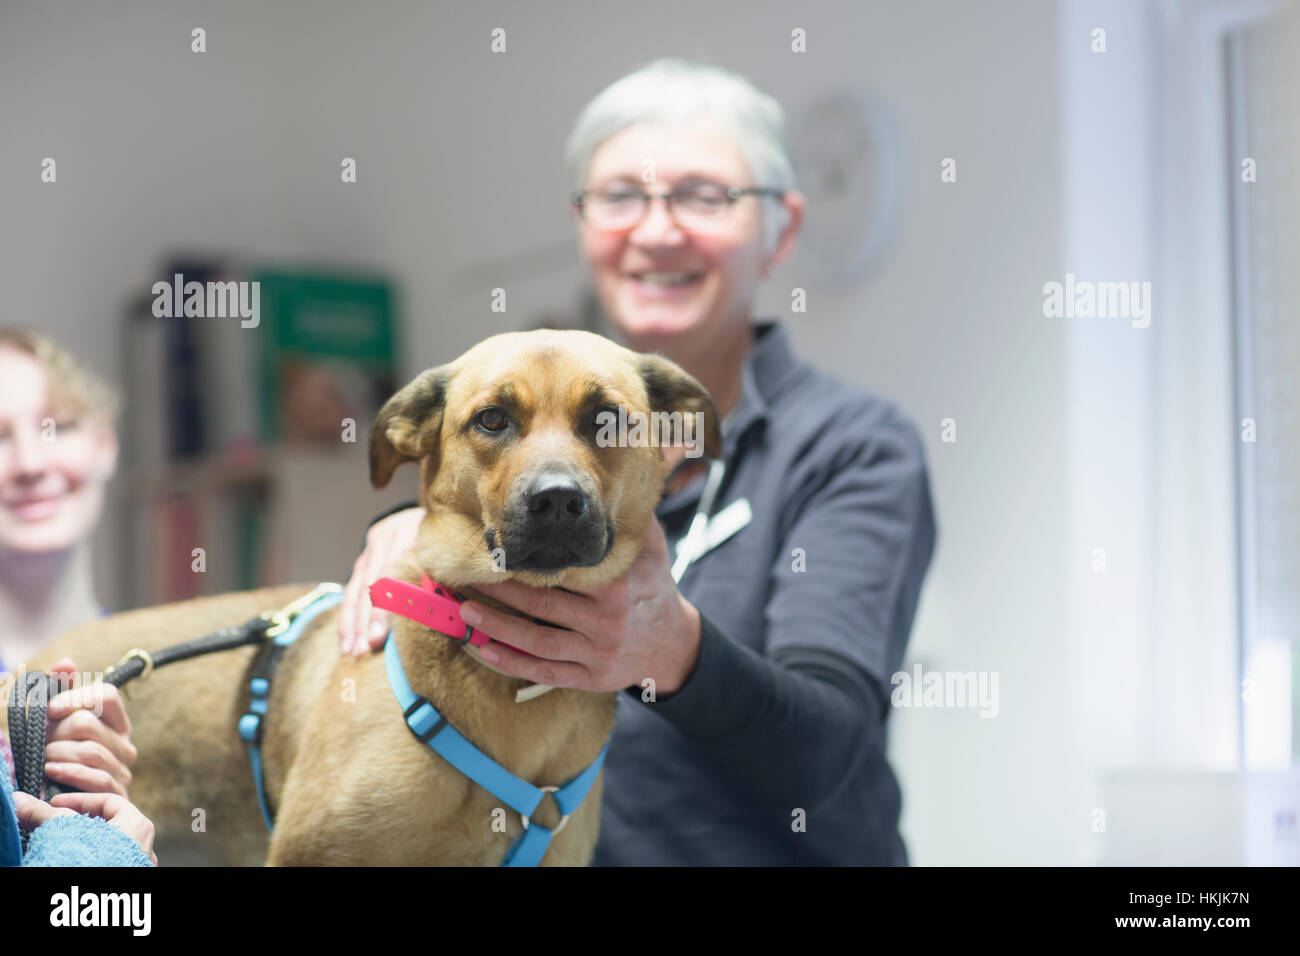 Veterinarian doing a check-up on a dog,Breisach,Baden-Württemberg,Germany - Stock Image